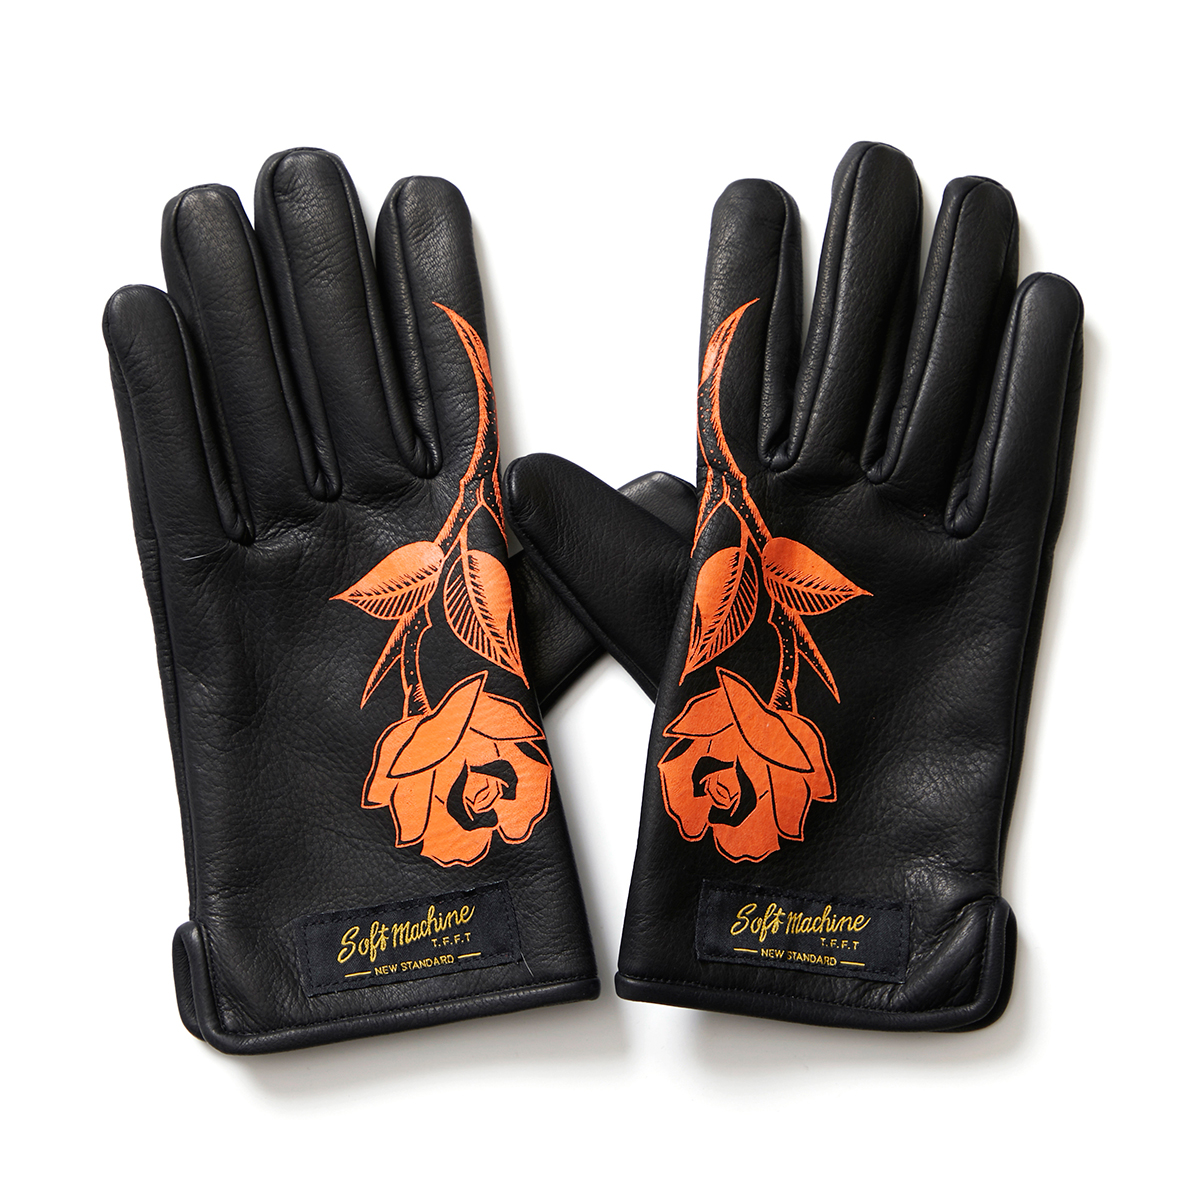 ROSES GLOVE